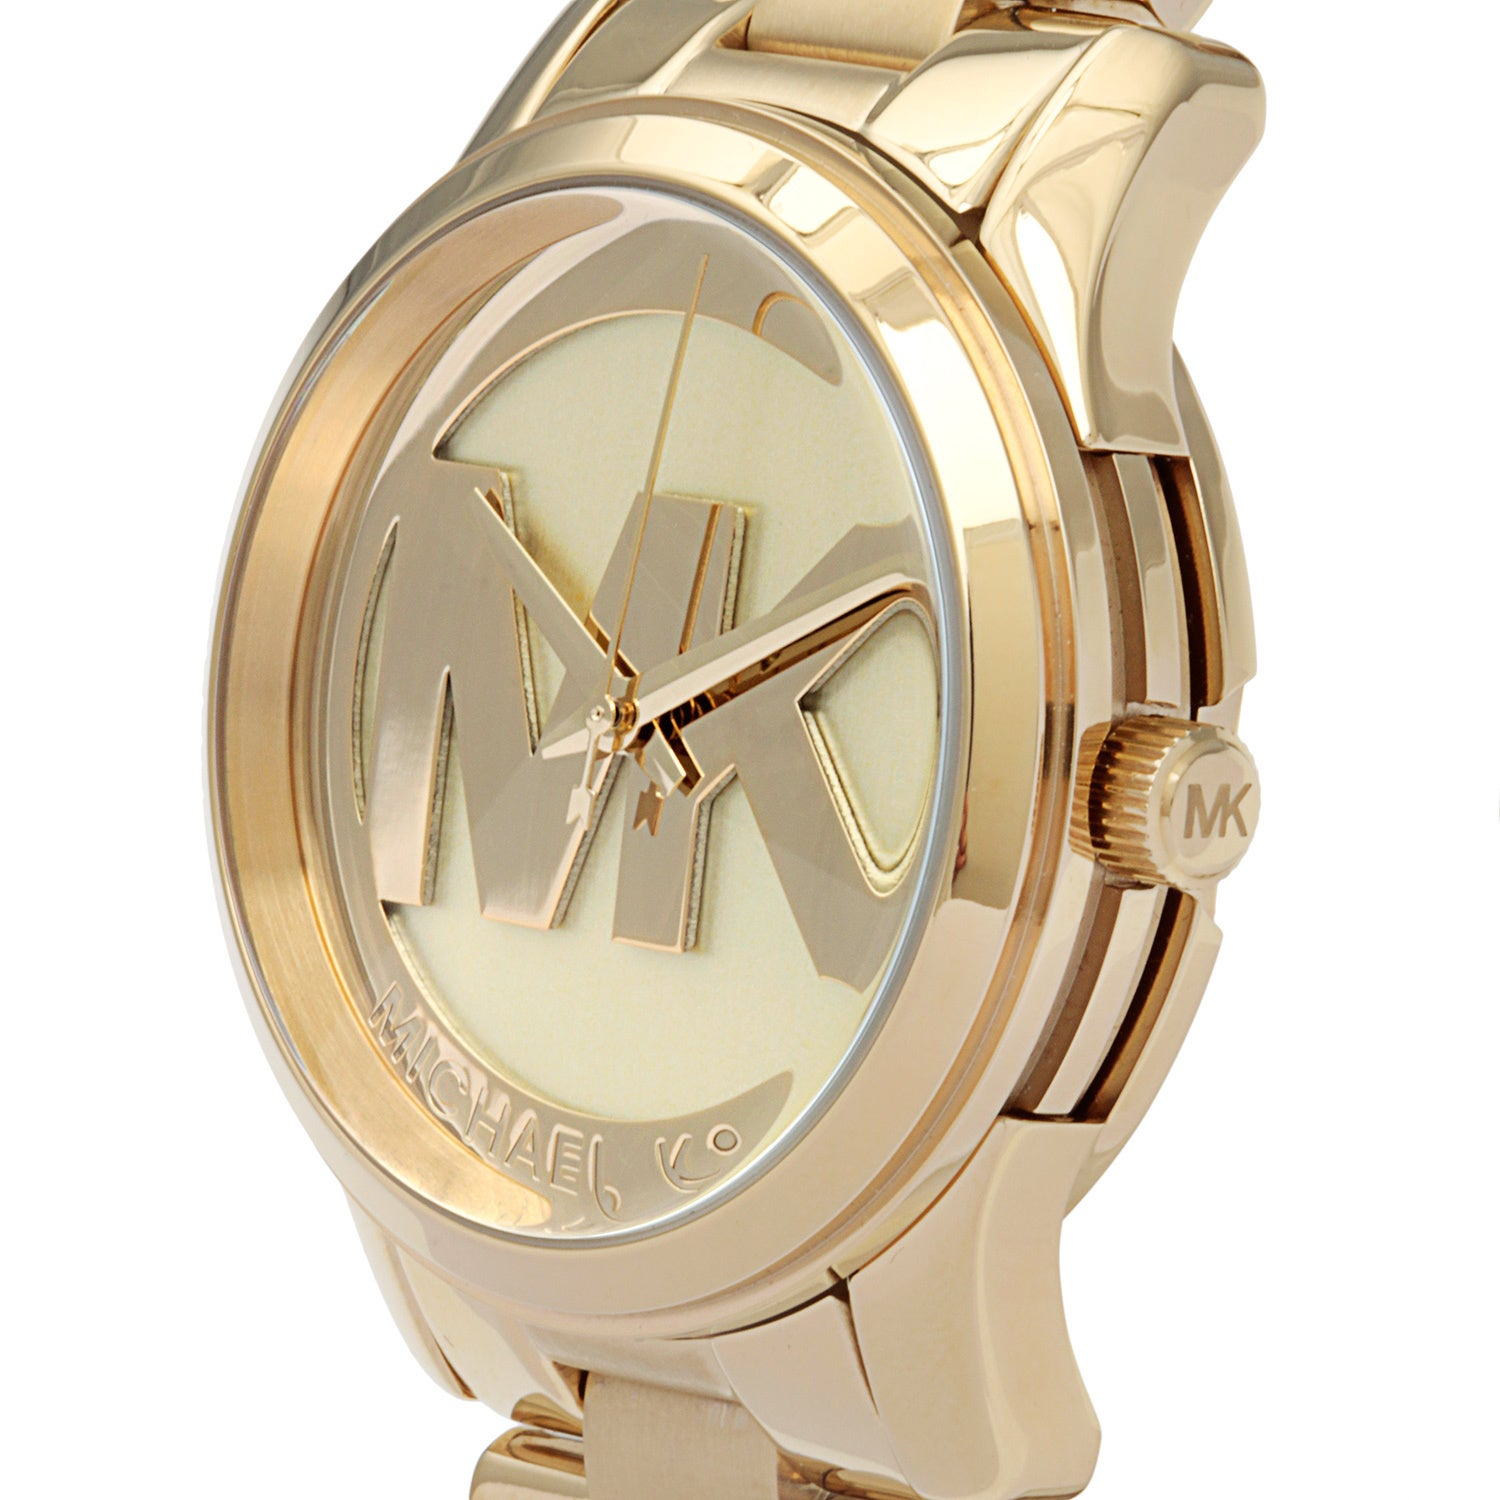 8137c346764d Shop Michael Kors Women s MK5786 Runway Goldtone Watch - Free Shipping  Today - Overstock - 8829941